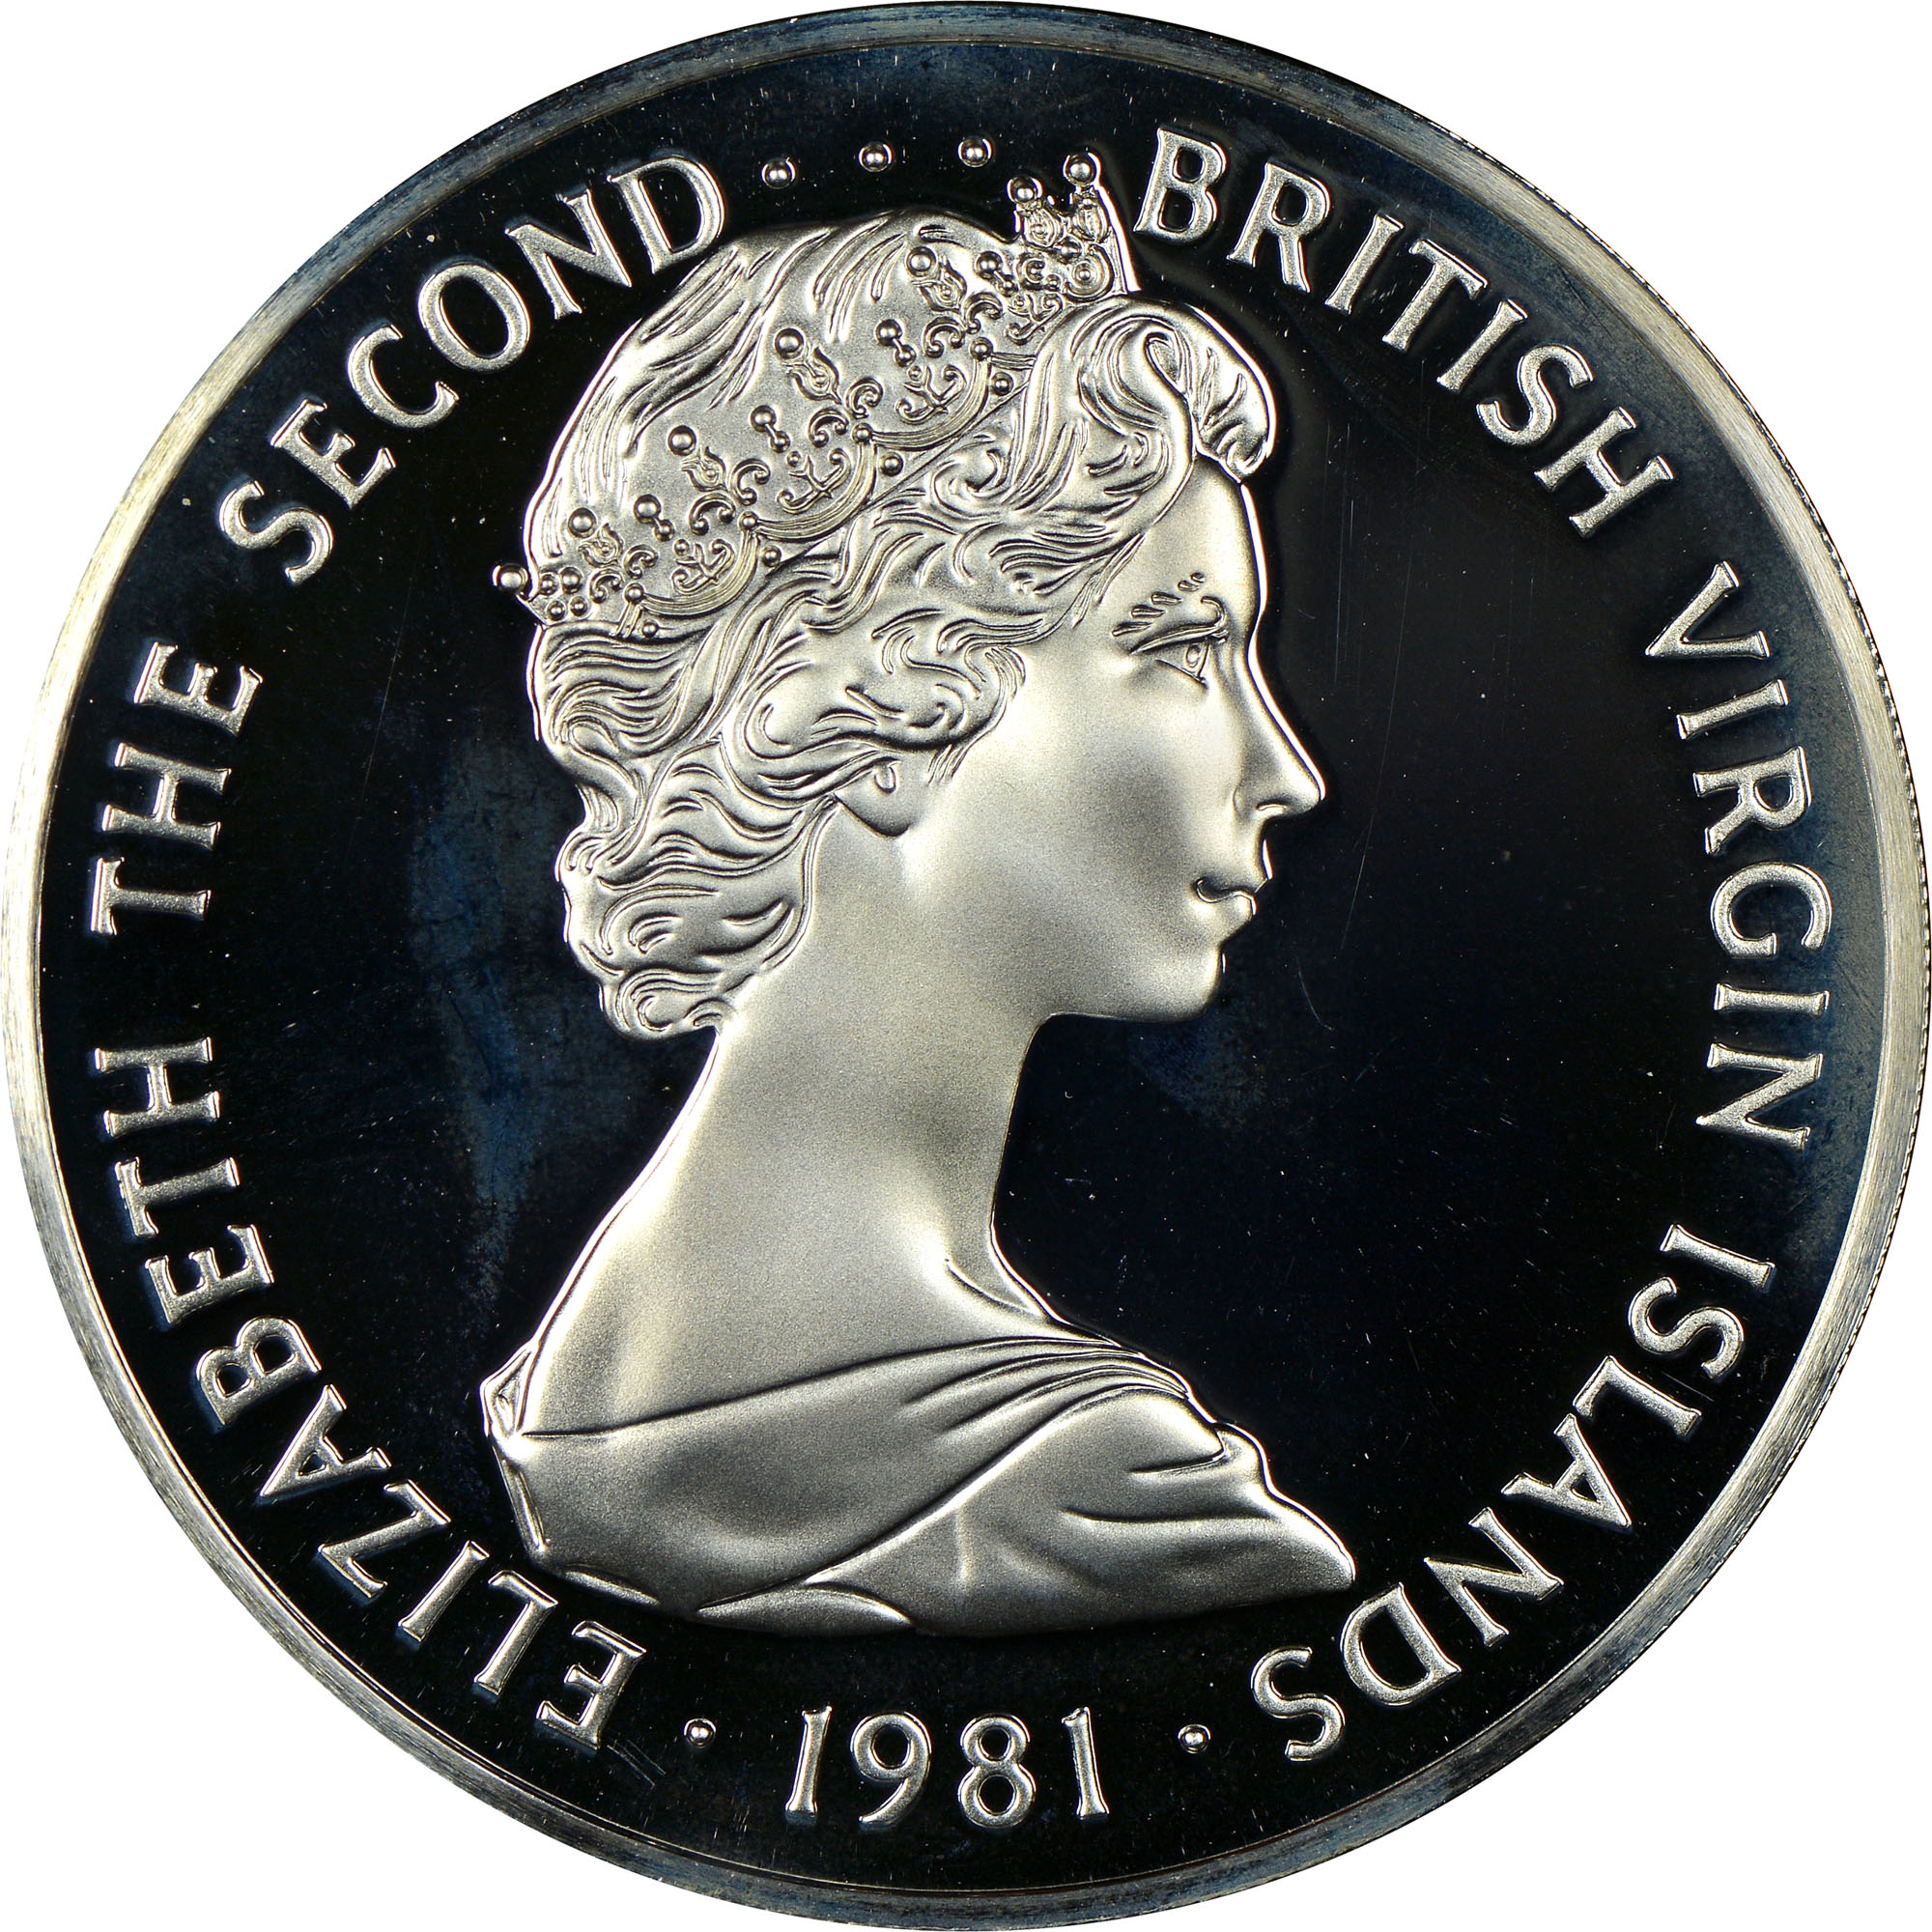 1973-1984 British Virgin Islands Dollar obverse